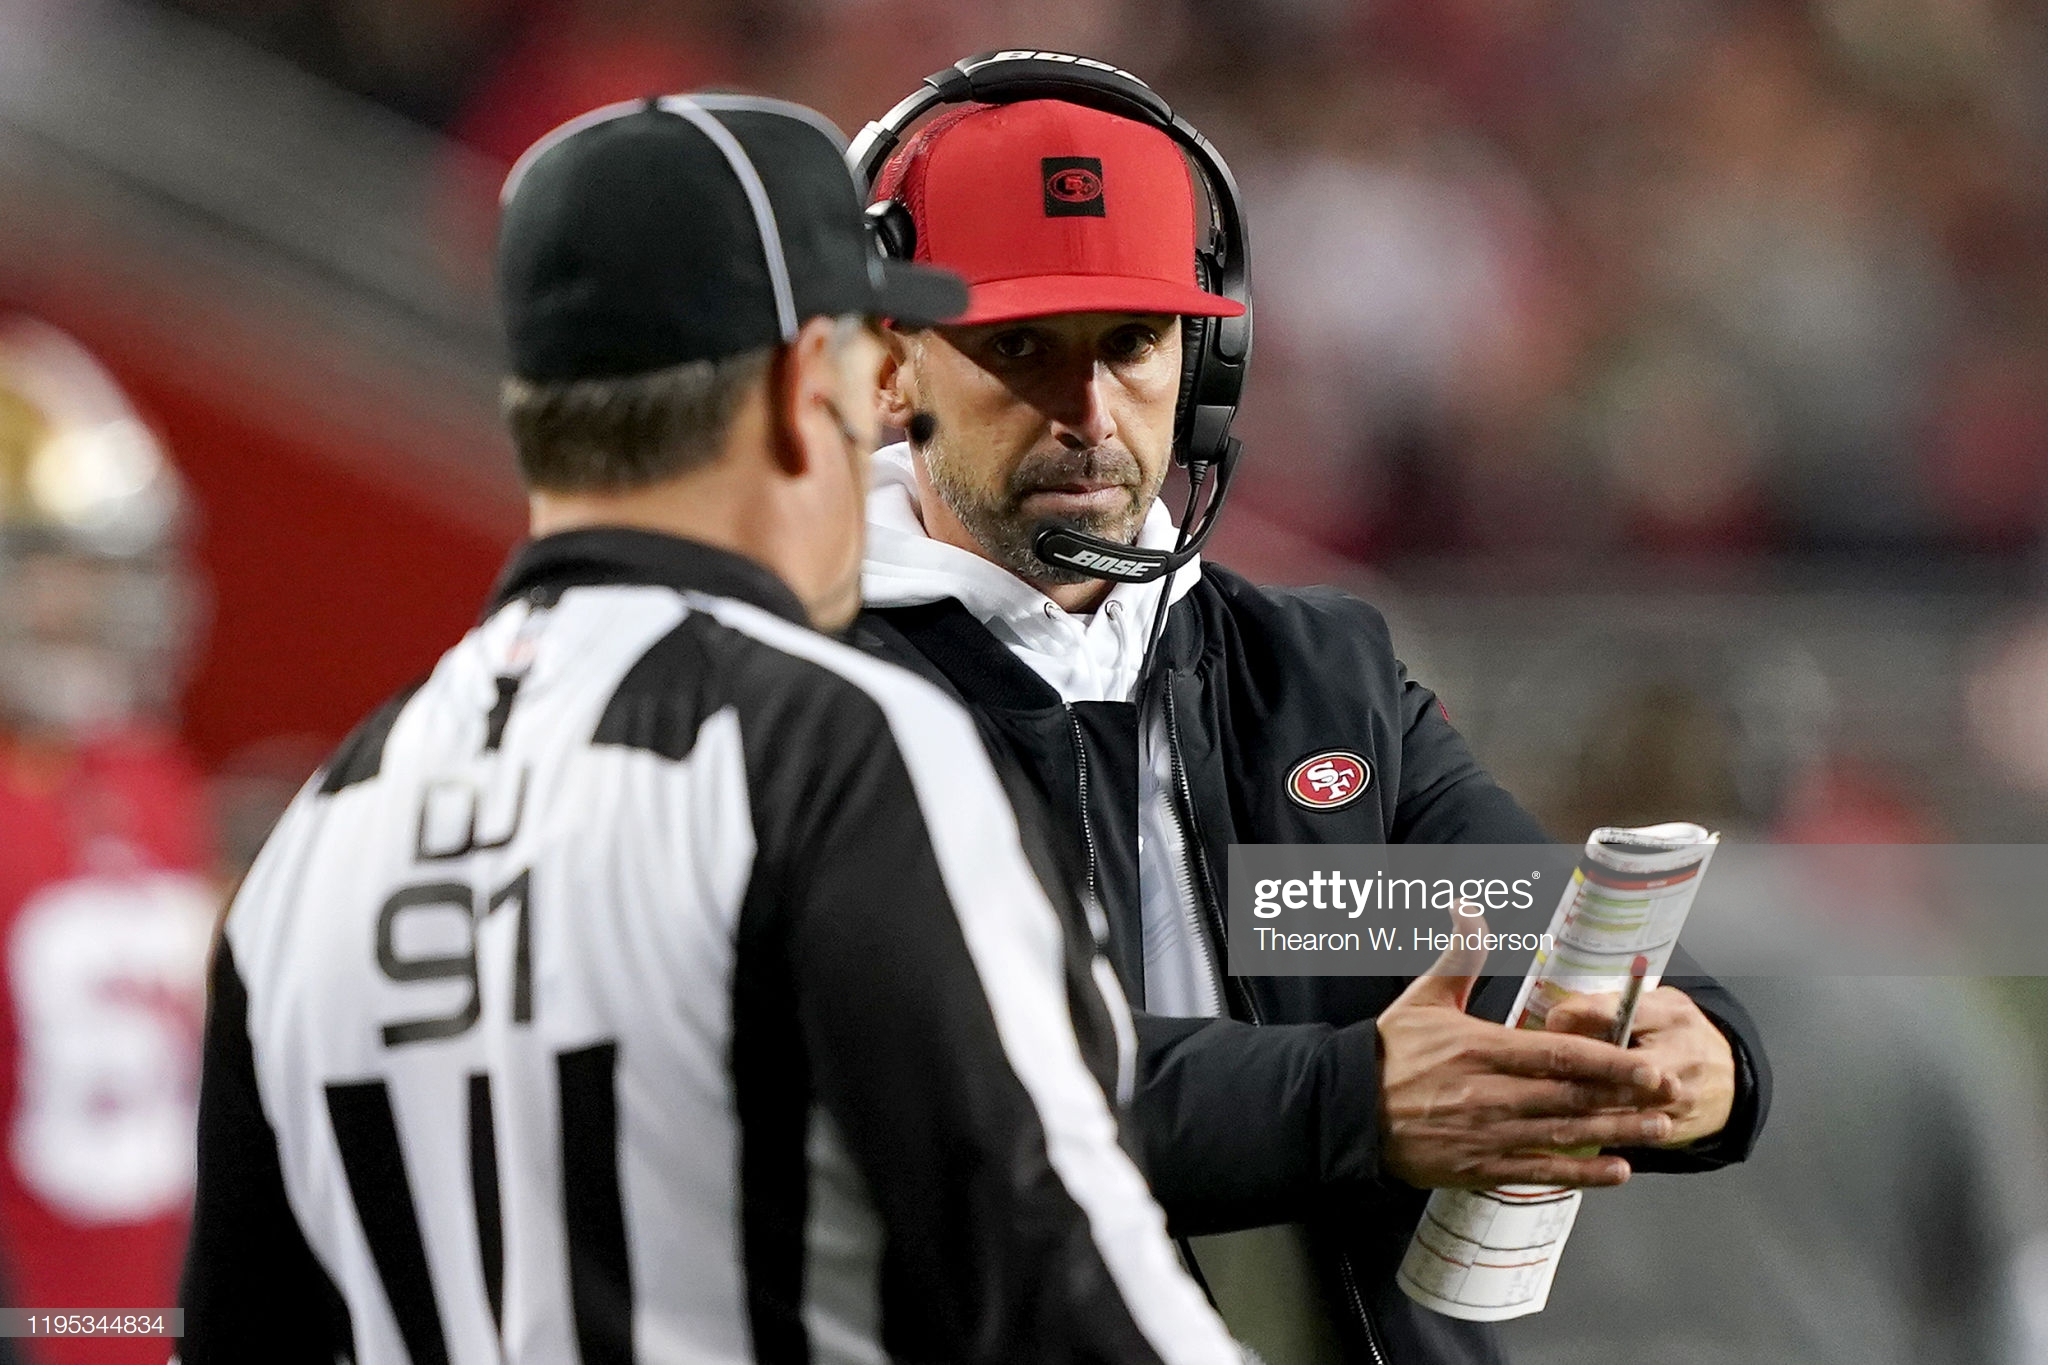 Working the official? Putting a bug in their ear? What exactly was Kyle Shanahan doing?